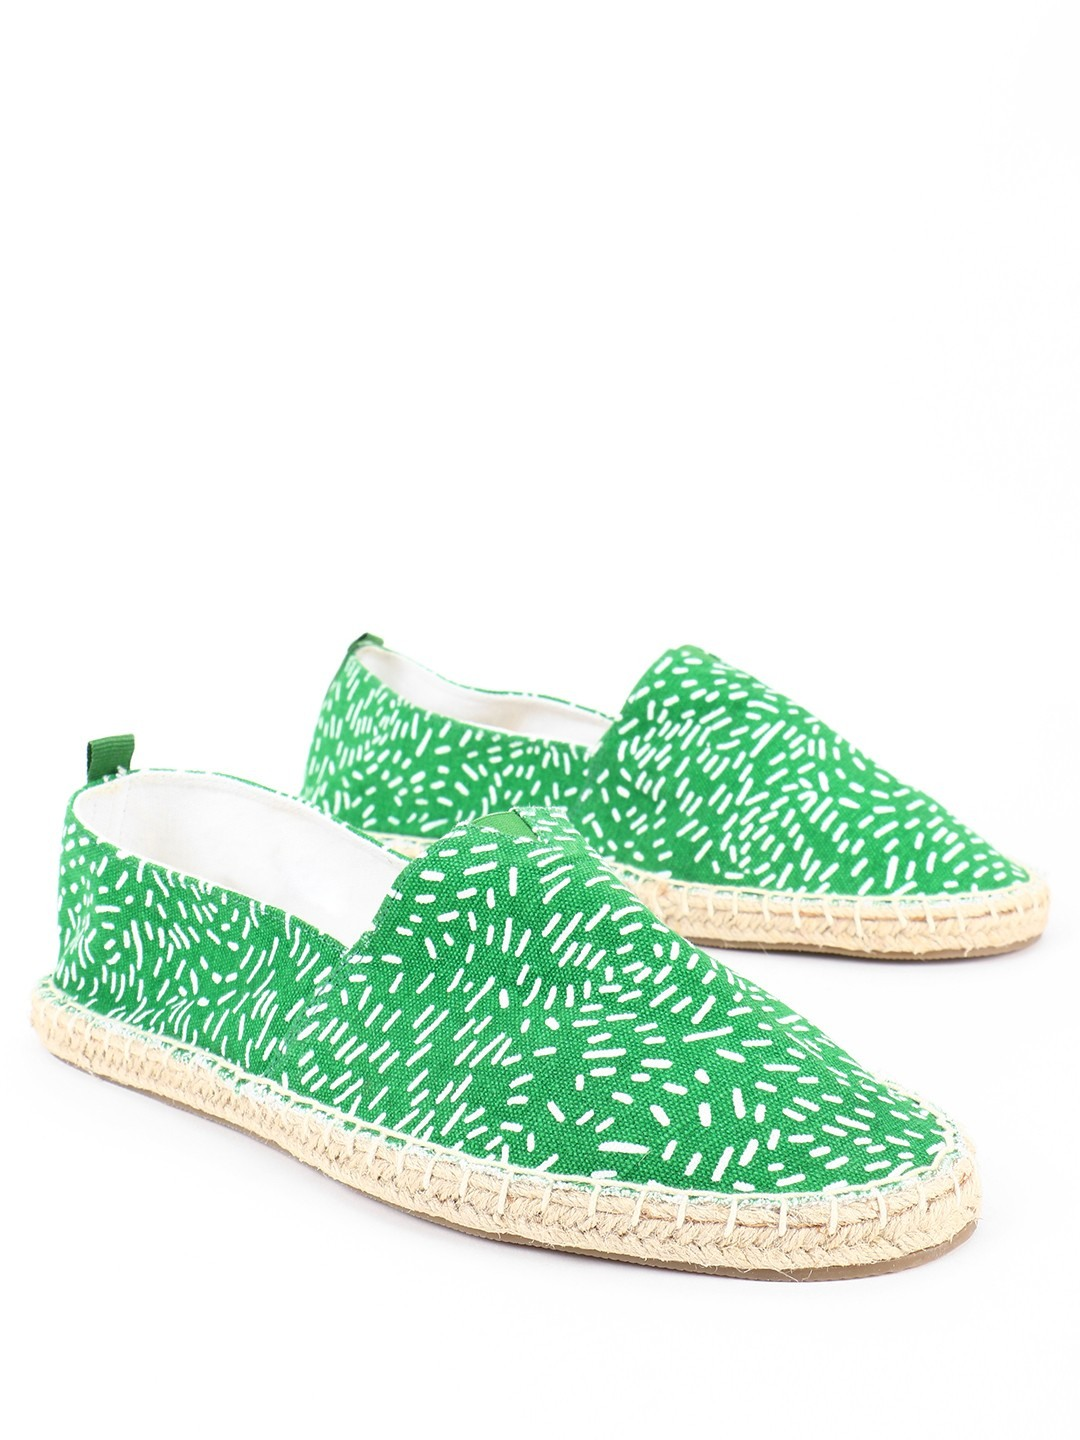 KOOVS Green All Over Print Original Espadrilles 1